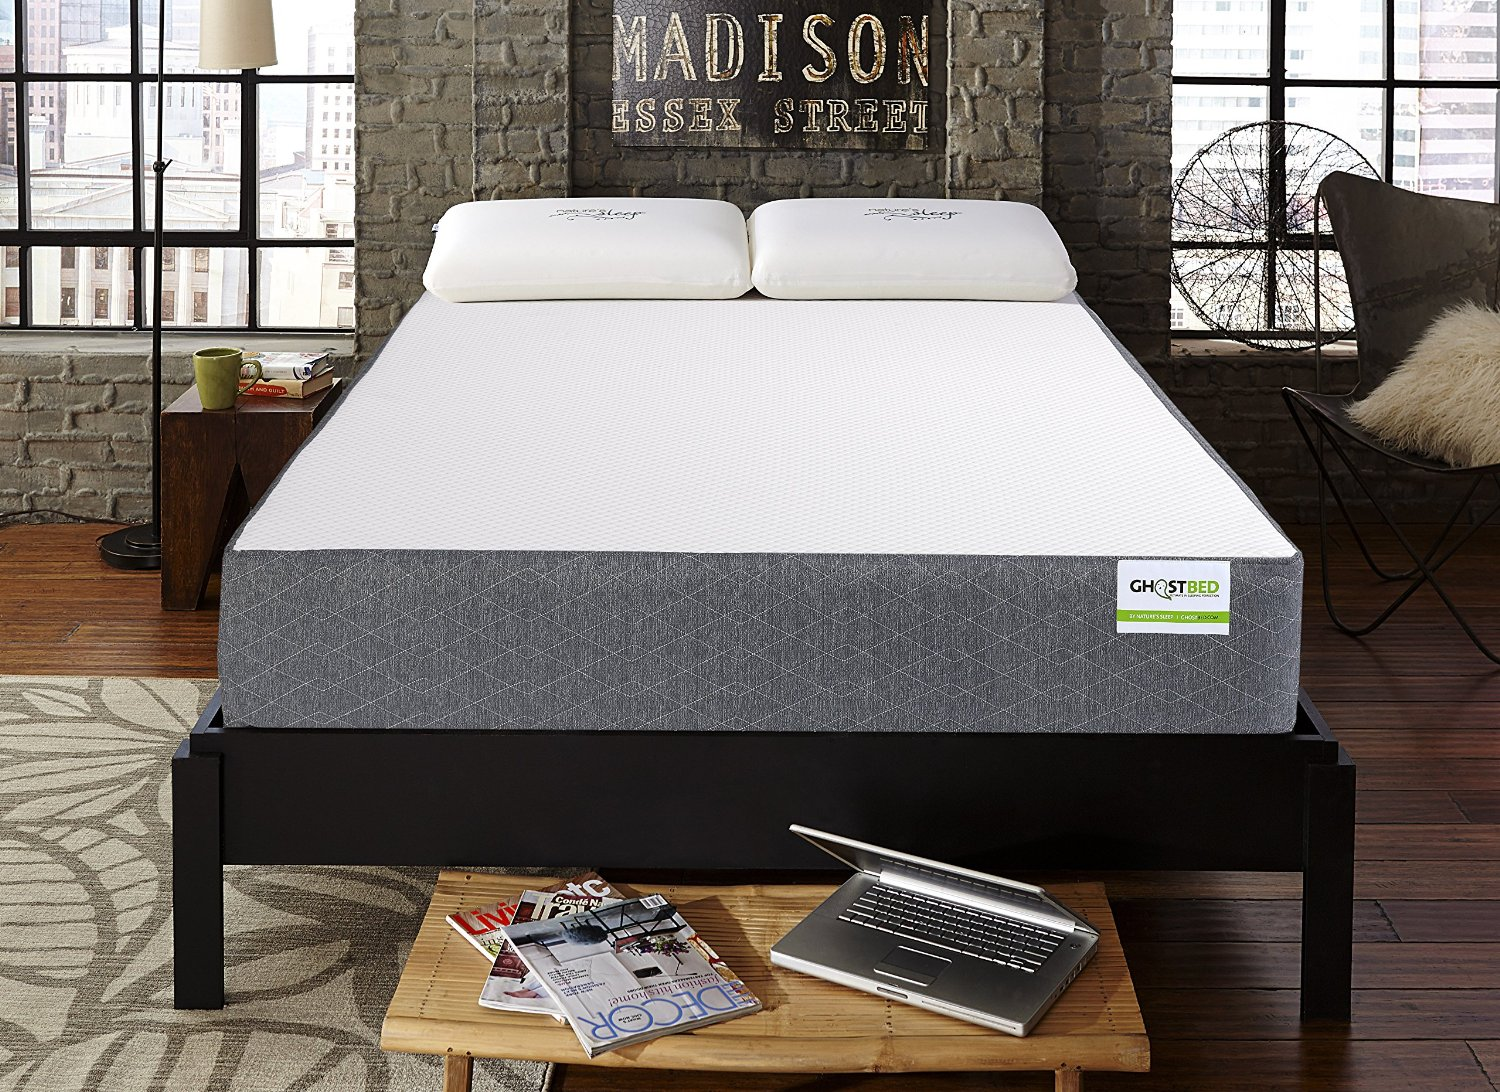 Charmant If Have Lower Back Pain, Try Ghostbed Mattress